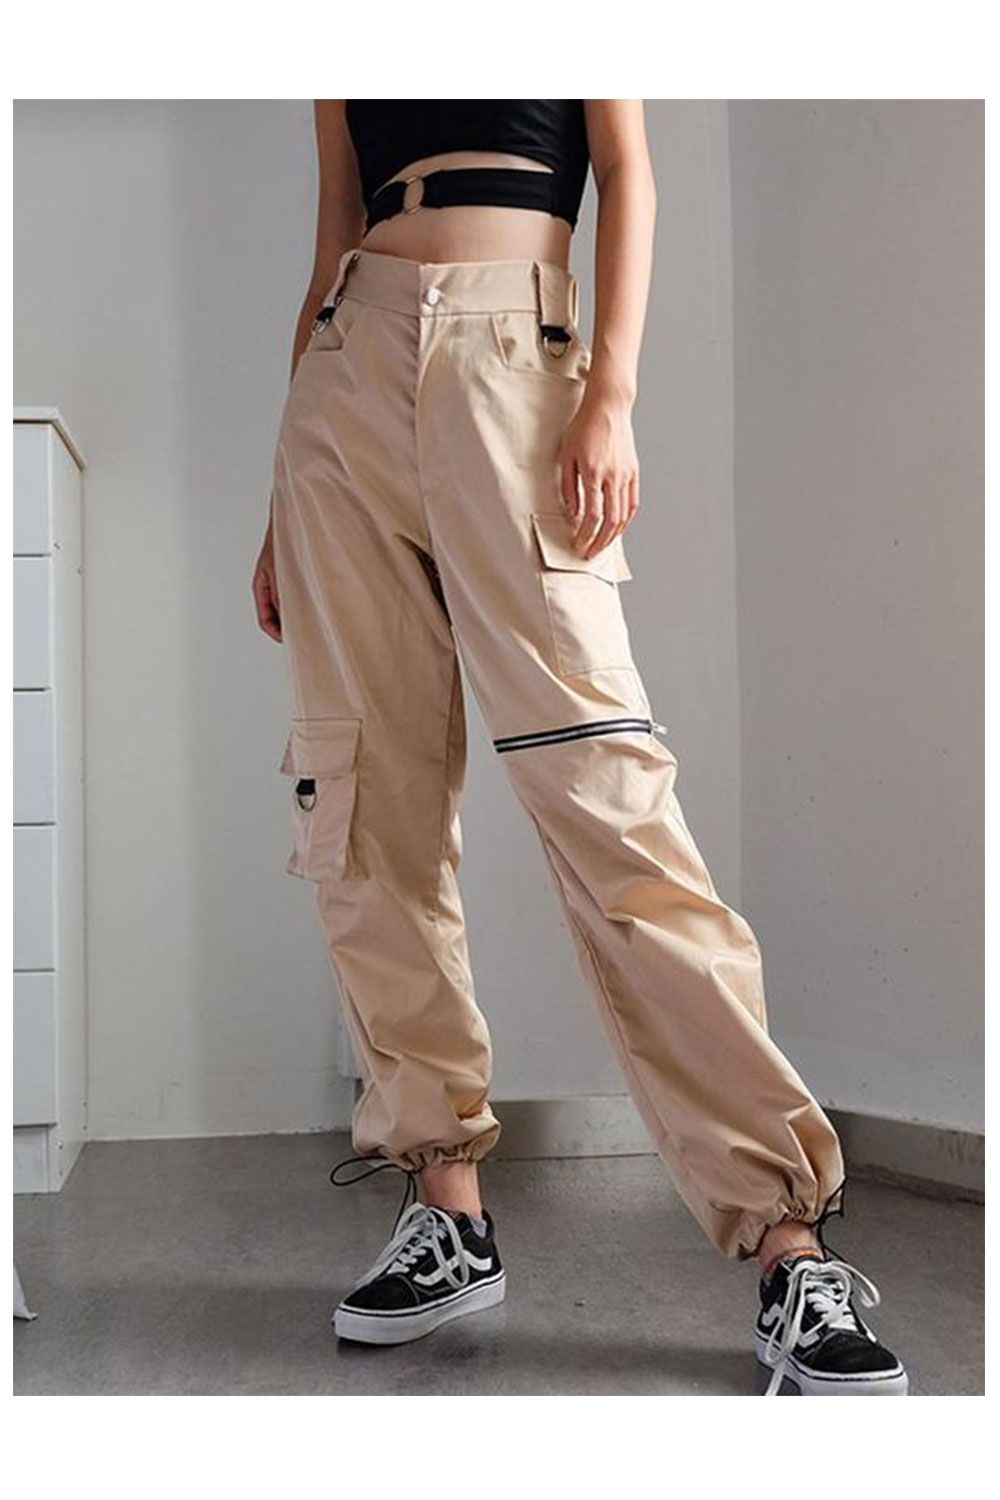 208030a4351 High Waist Long Trousers Casual Loose Solid Cool Streetwear Cargo ...